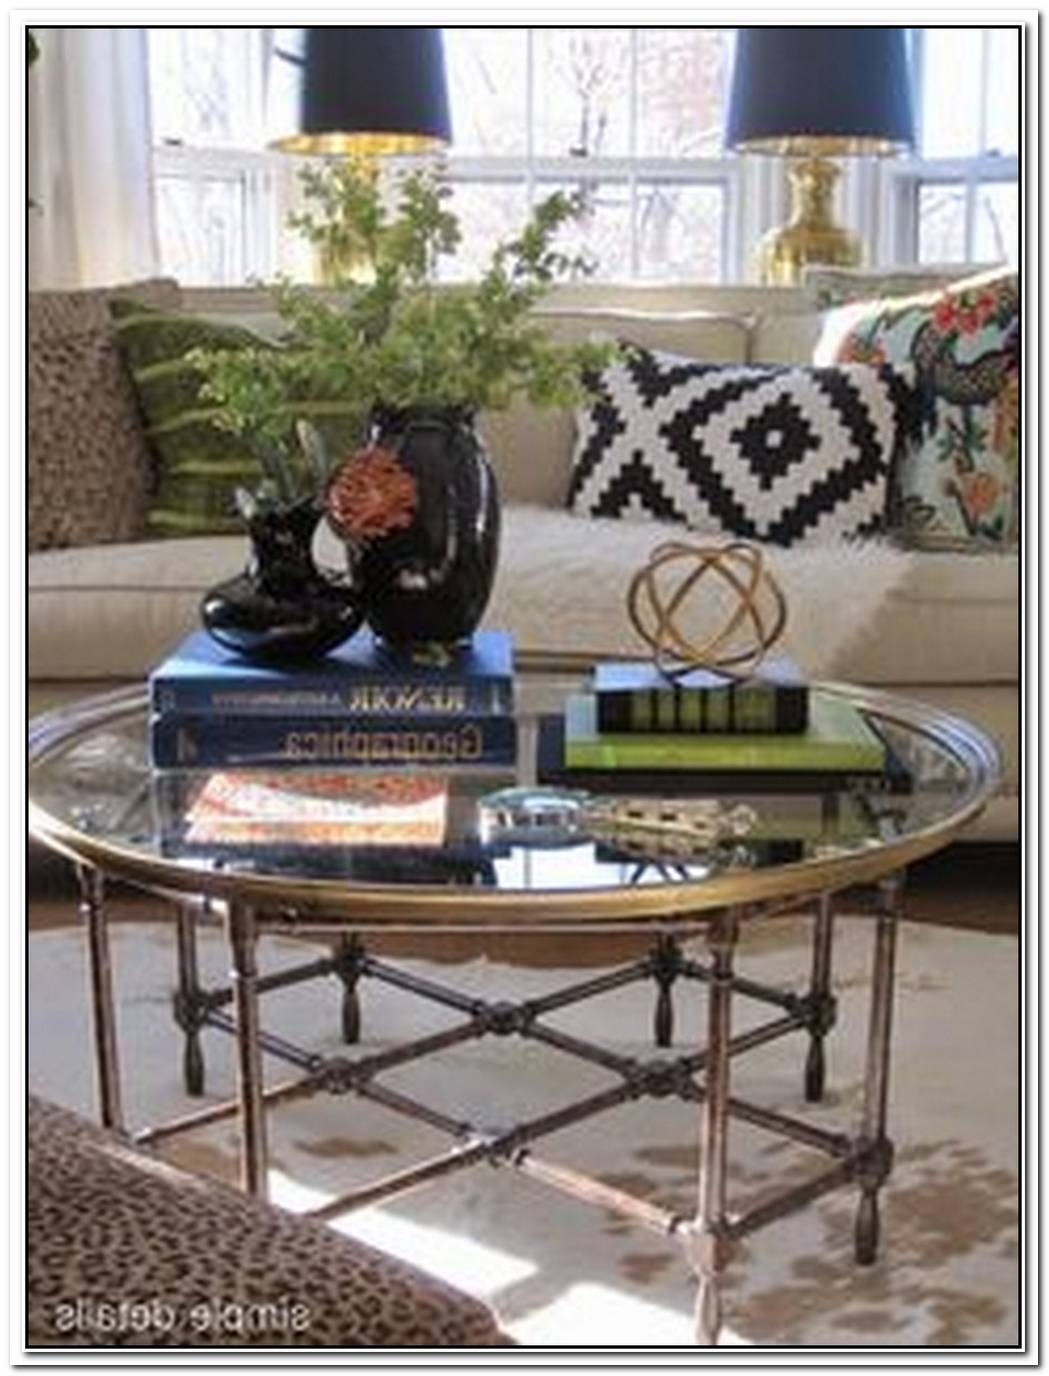 25 Decorative Accents Under $50 To Style A Coffee Table